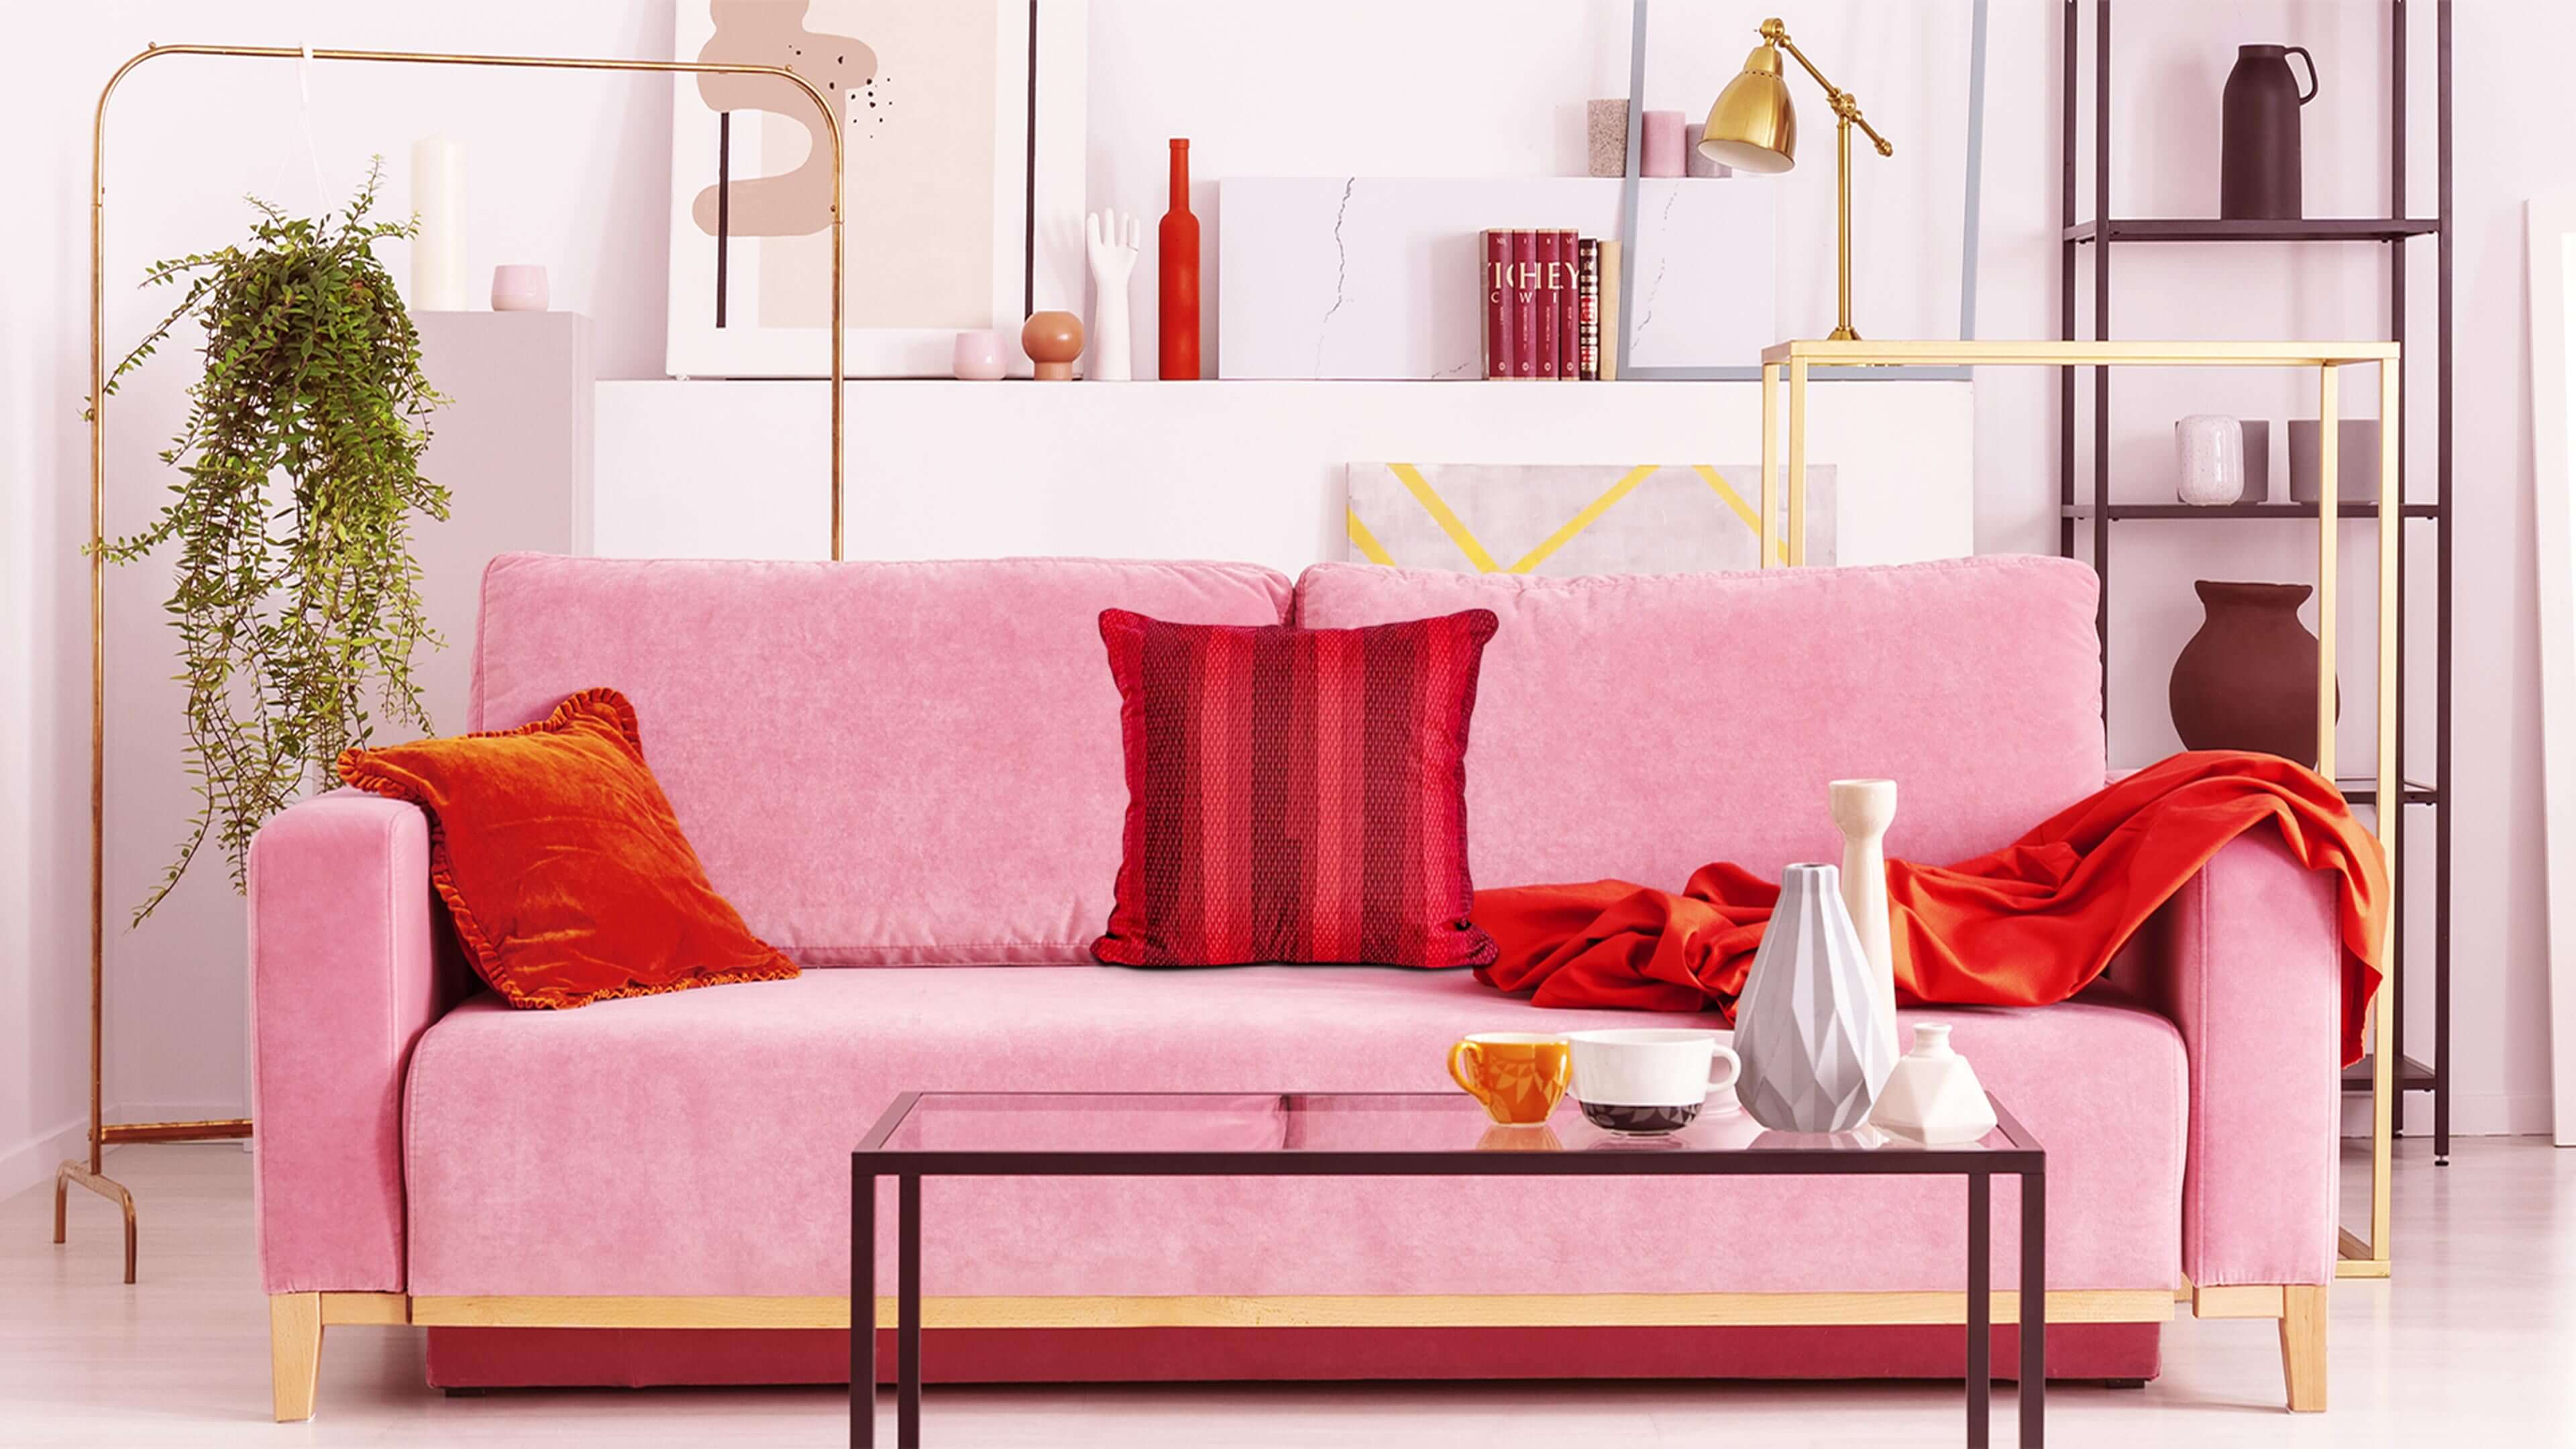 Red faux suede throw pillow on pink living room couch